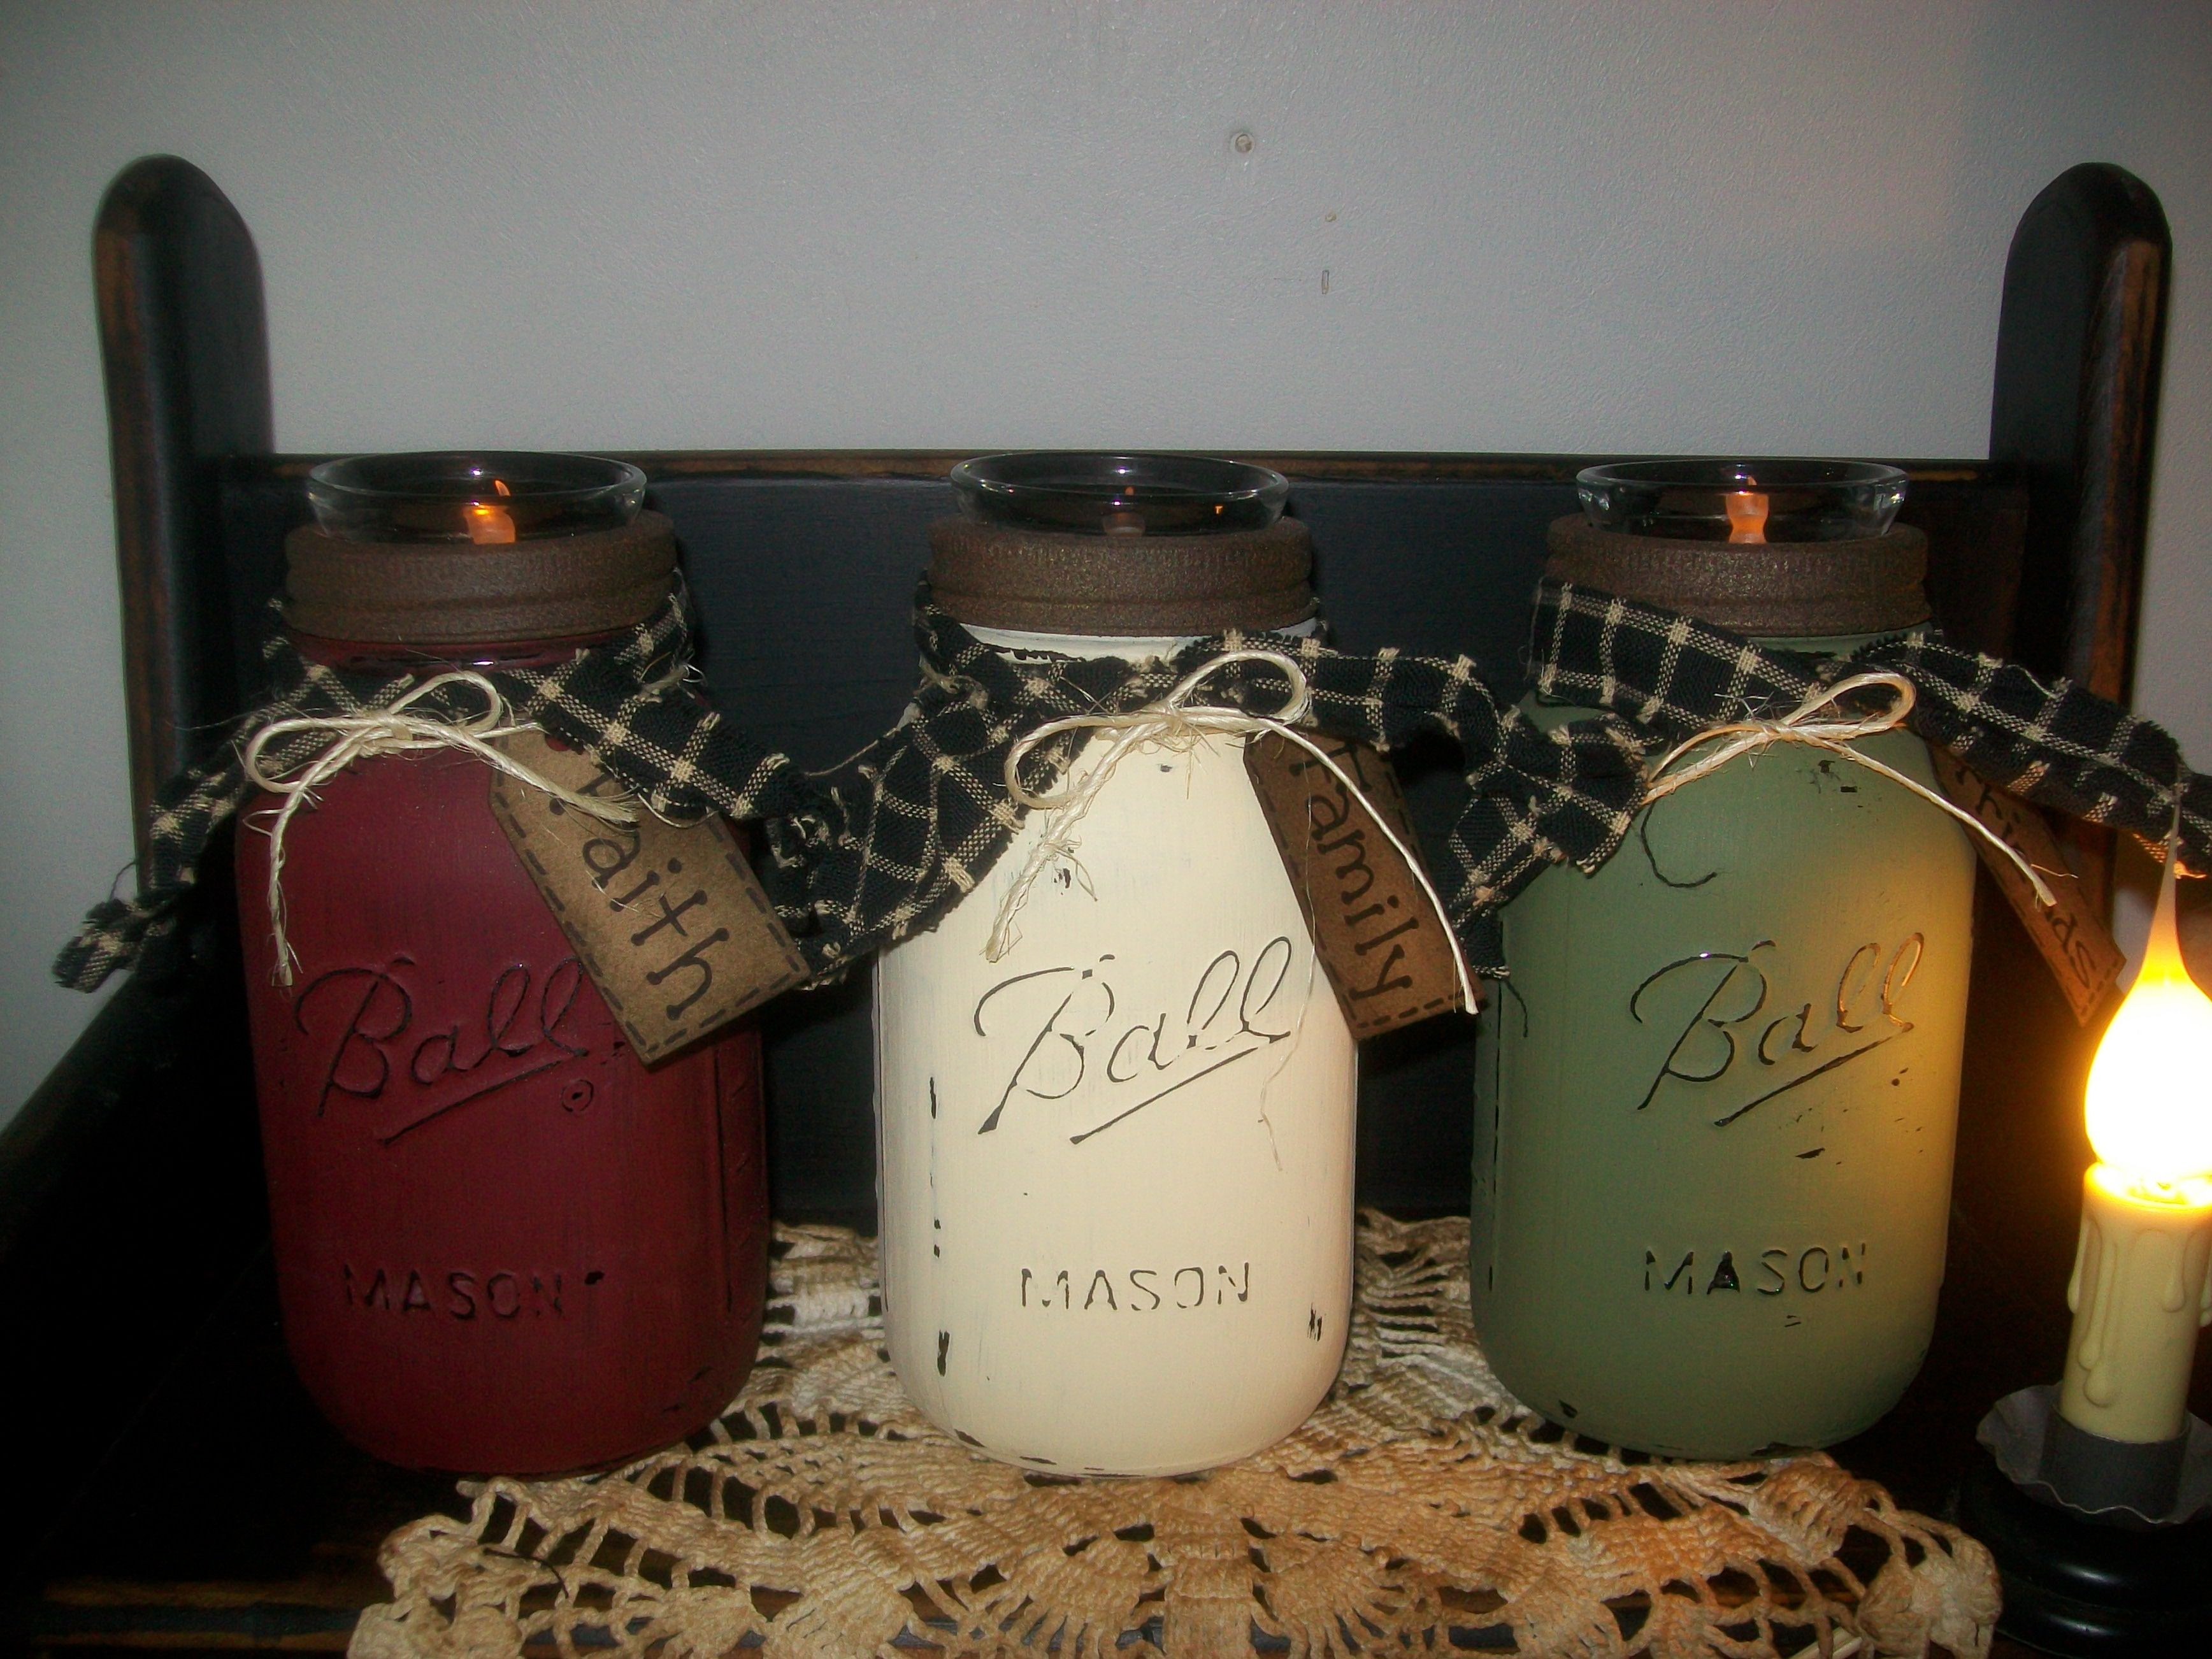 Primitive Distressed Mason Jar Tea Lights Https Www Facebook Com Pages Busy Mamas Place 530524783656423 Primitive Mason Jars Mason Jars Mason Jar Fun